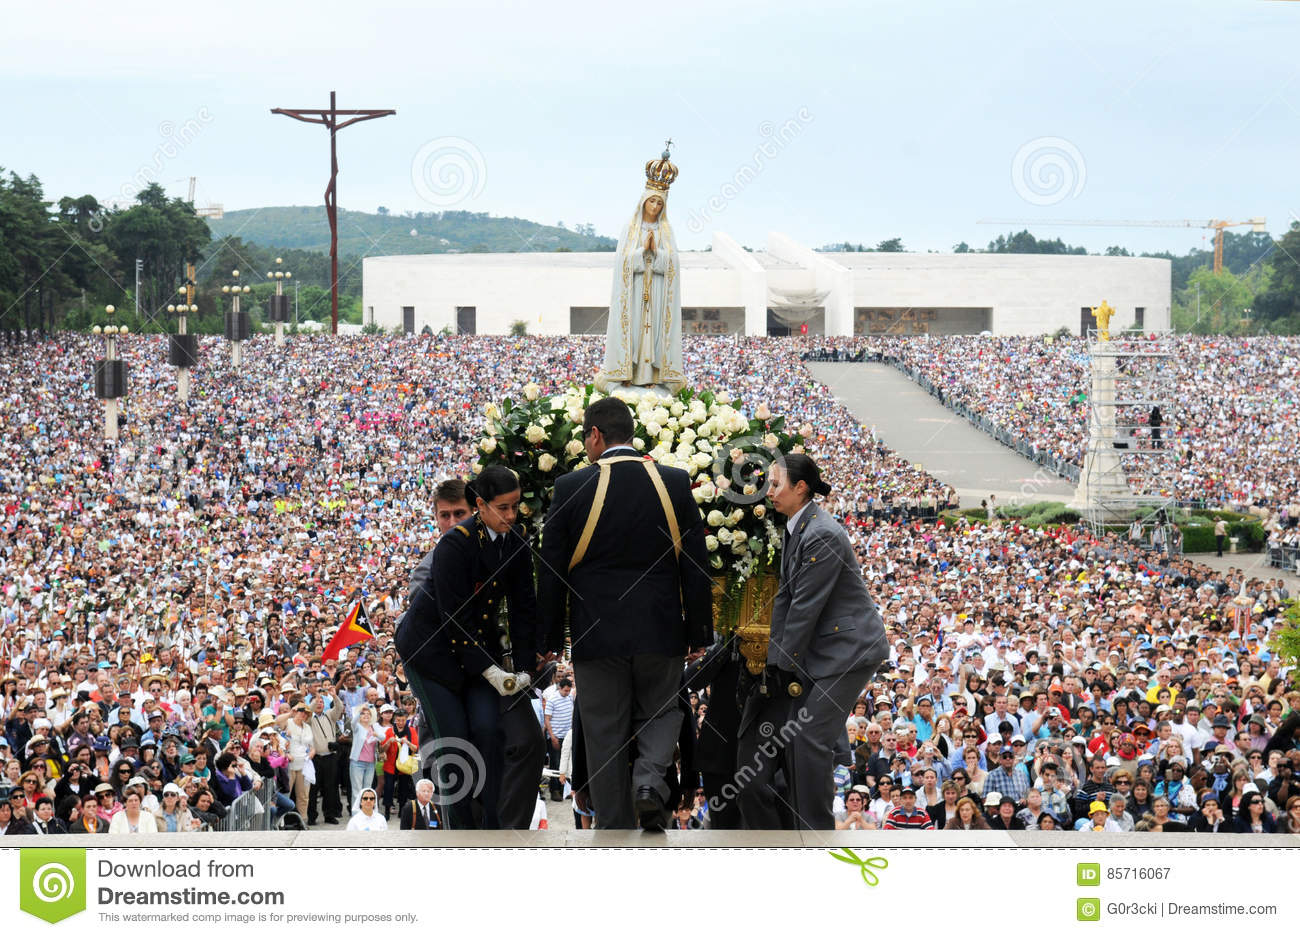 Our Lady of Fatima Pilgrimage, Virgin Mary Mother of Jesus, Christian Faith, Devotee Crowd